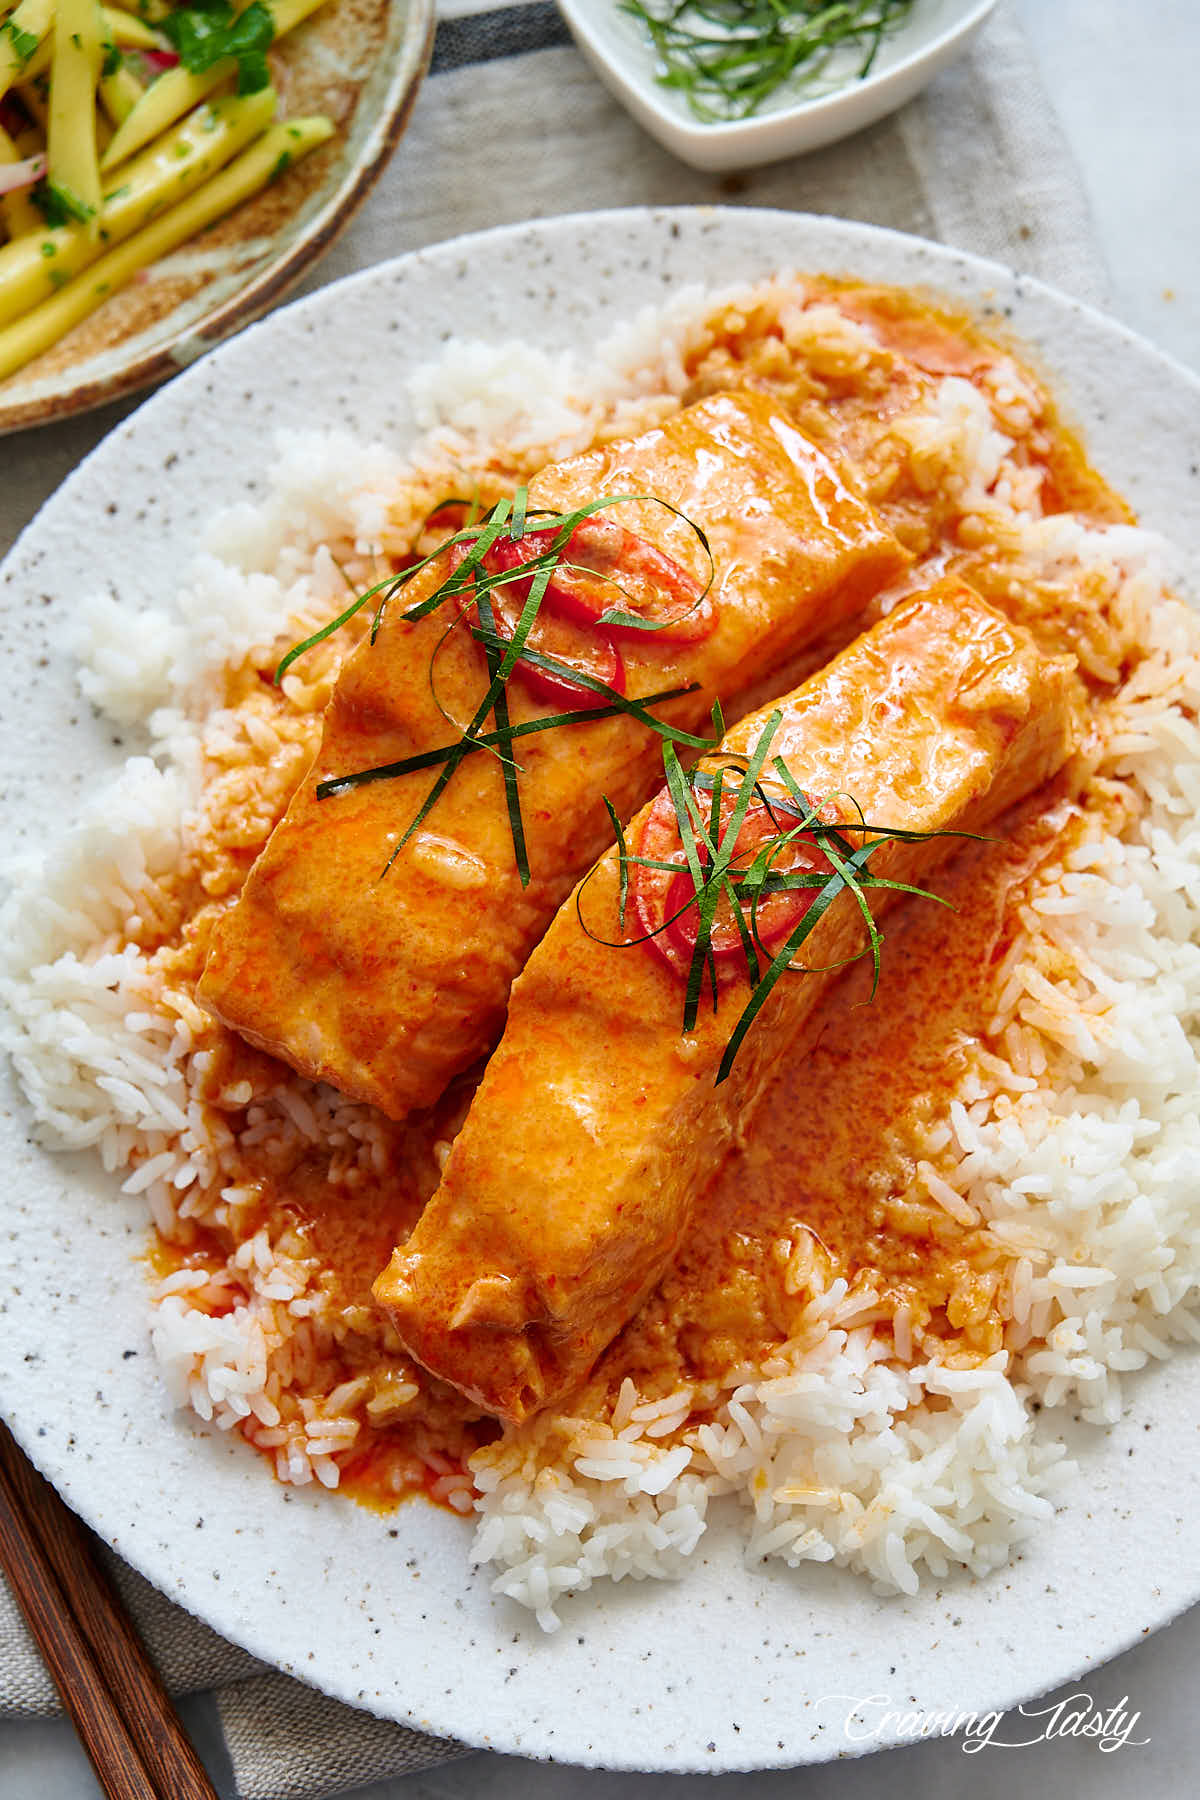 Salmon and curry over white rice.